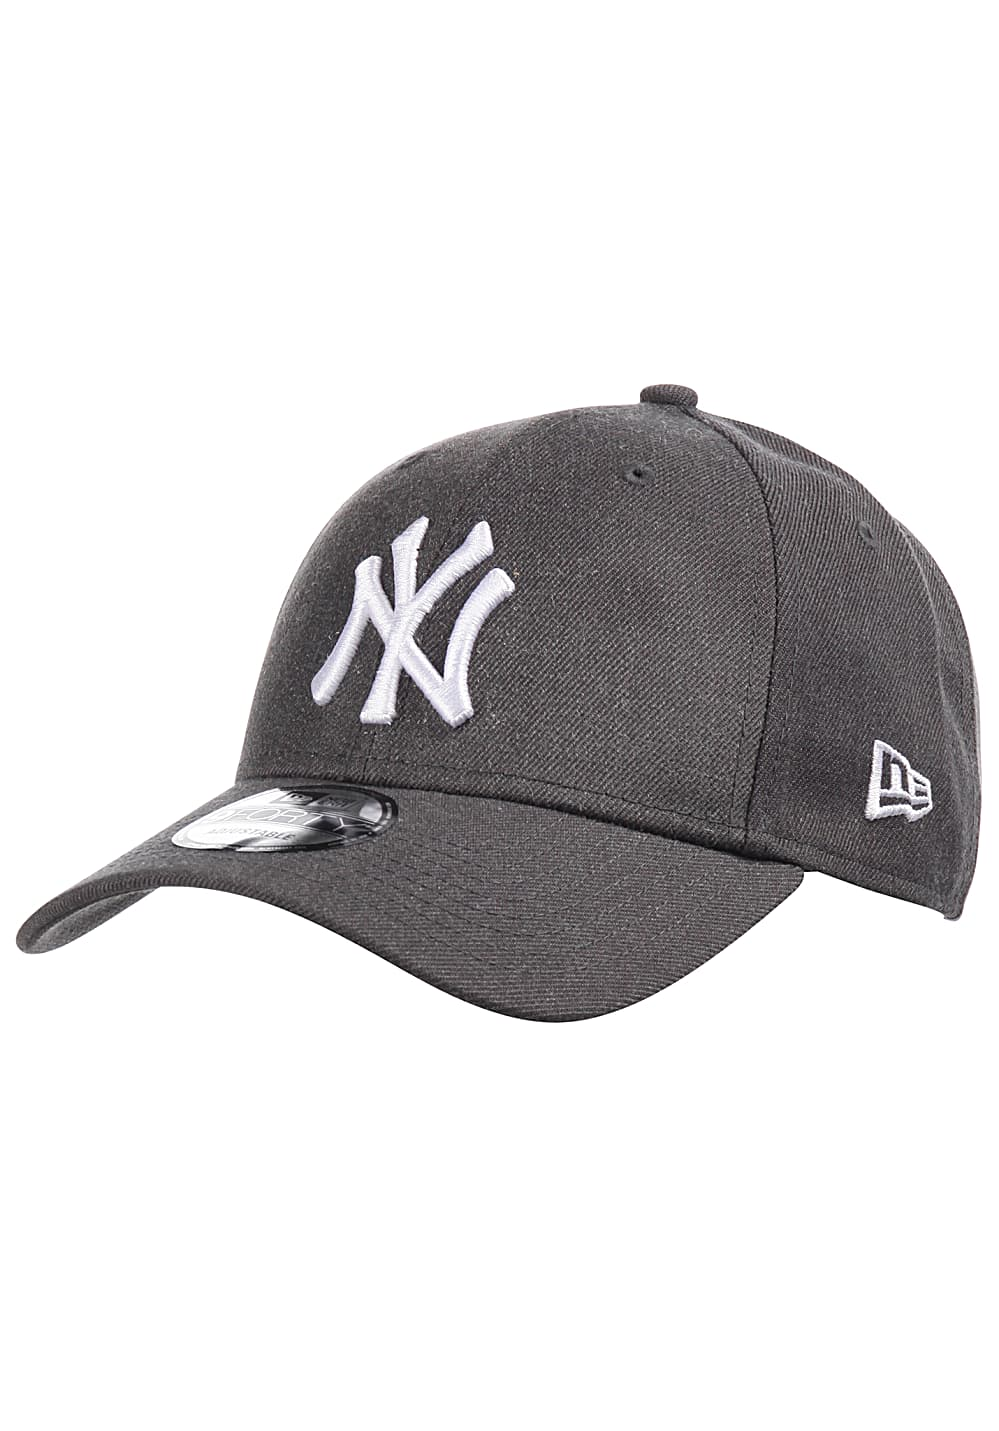 d7c8ab52e53cf NEW Era 9Forty New York Yankees - Cap - Grey - Planet Sports